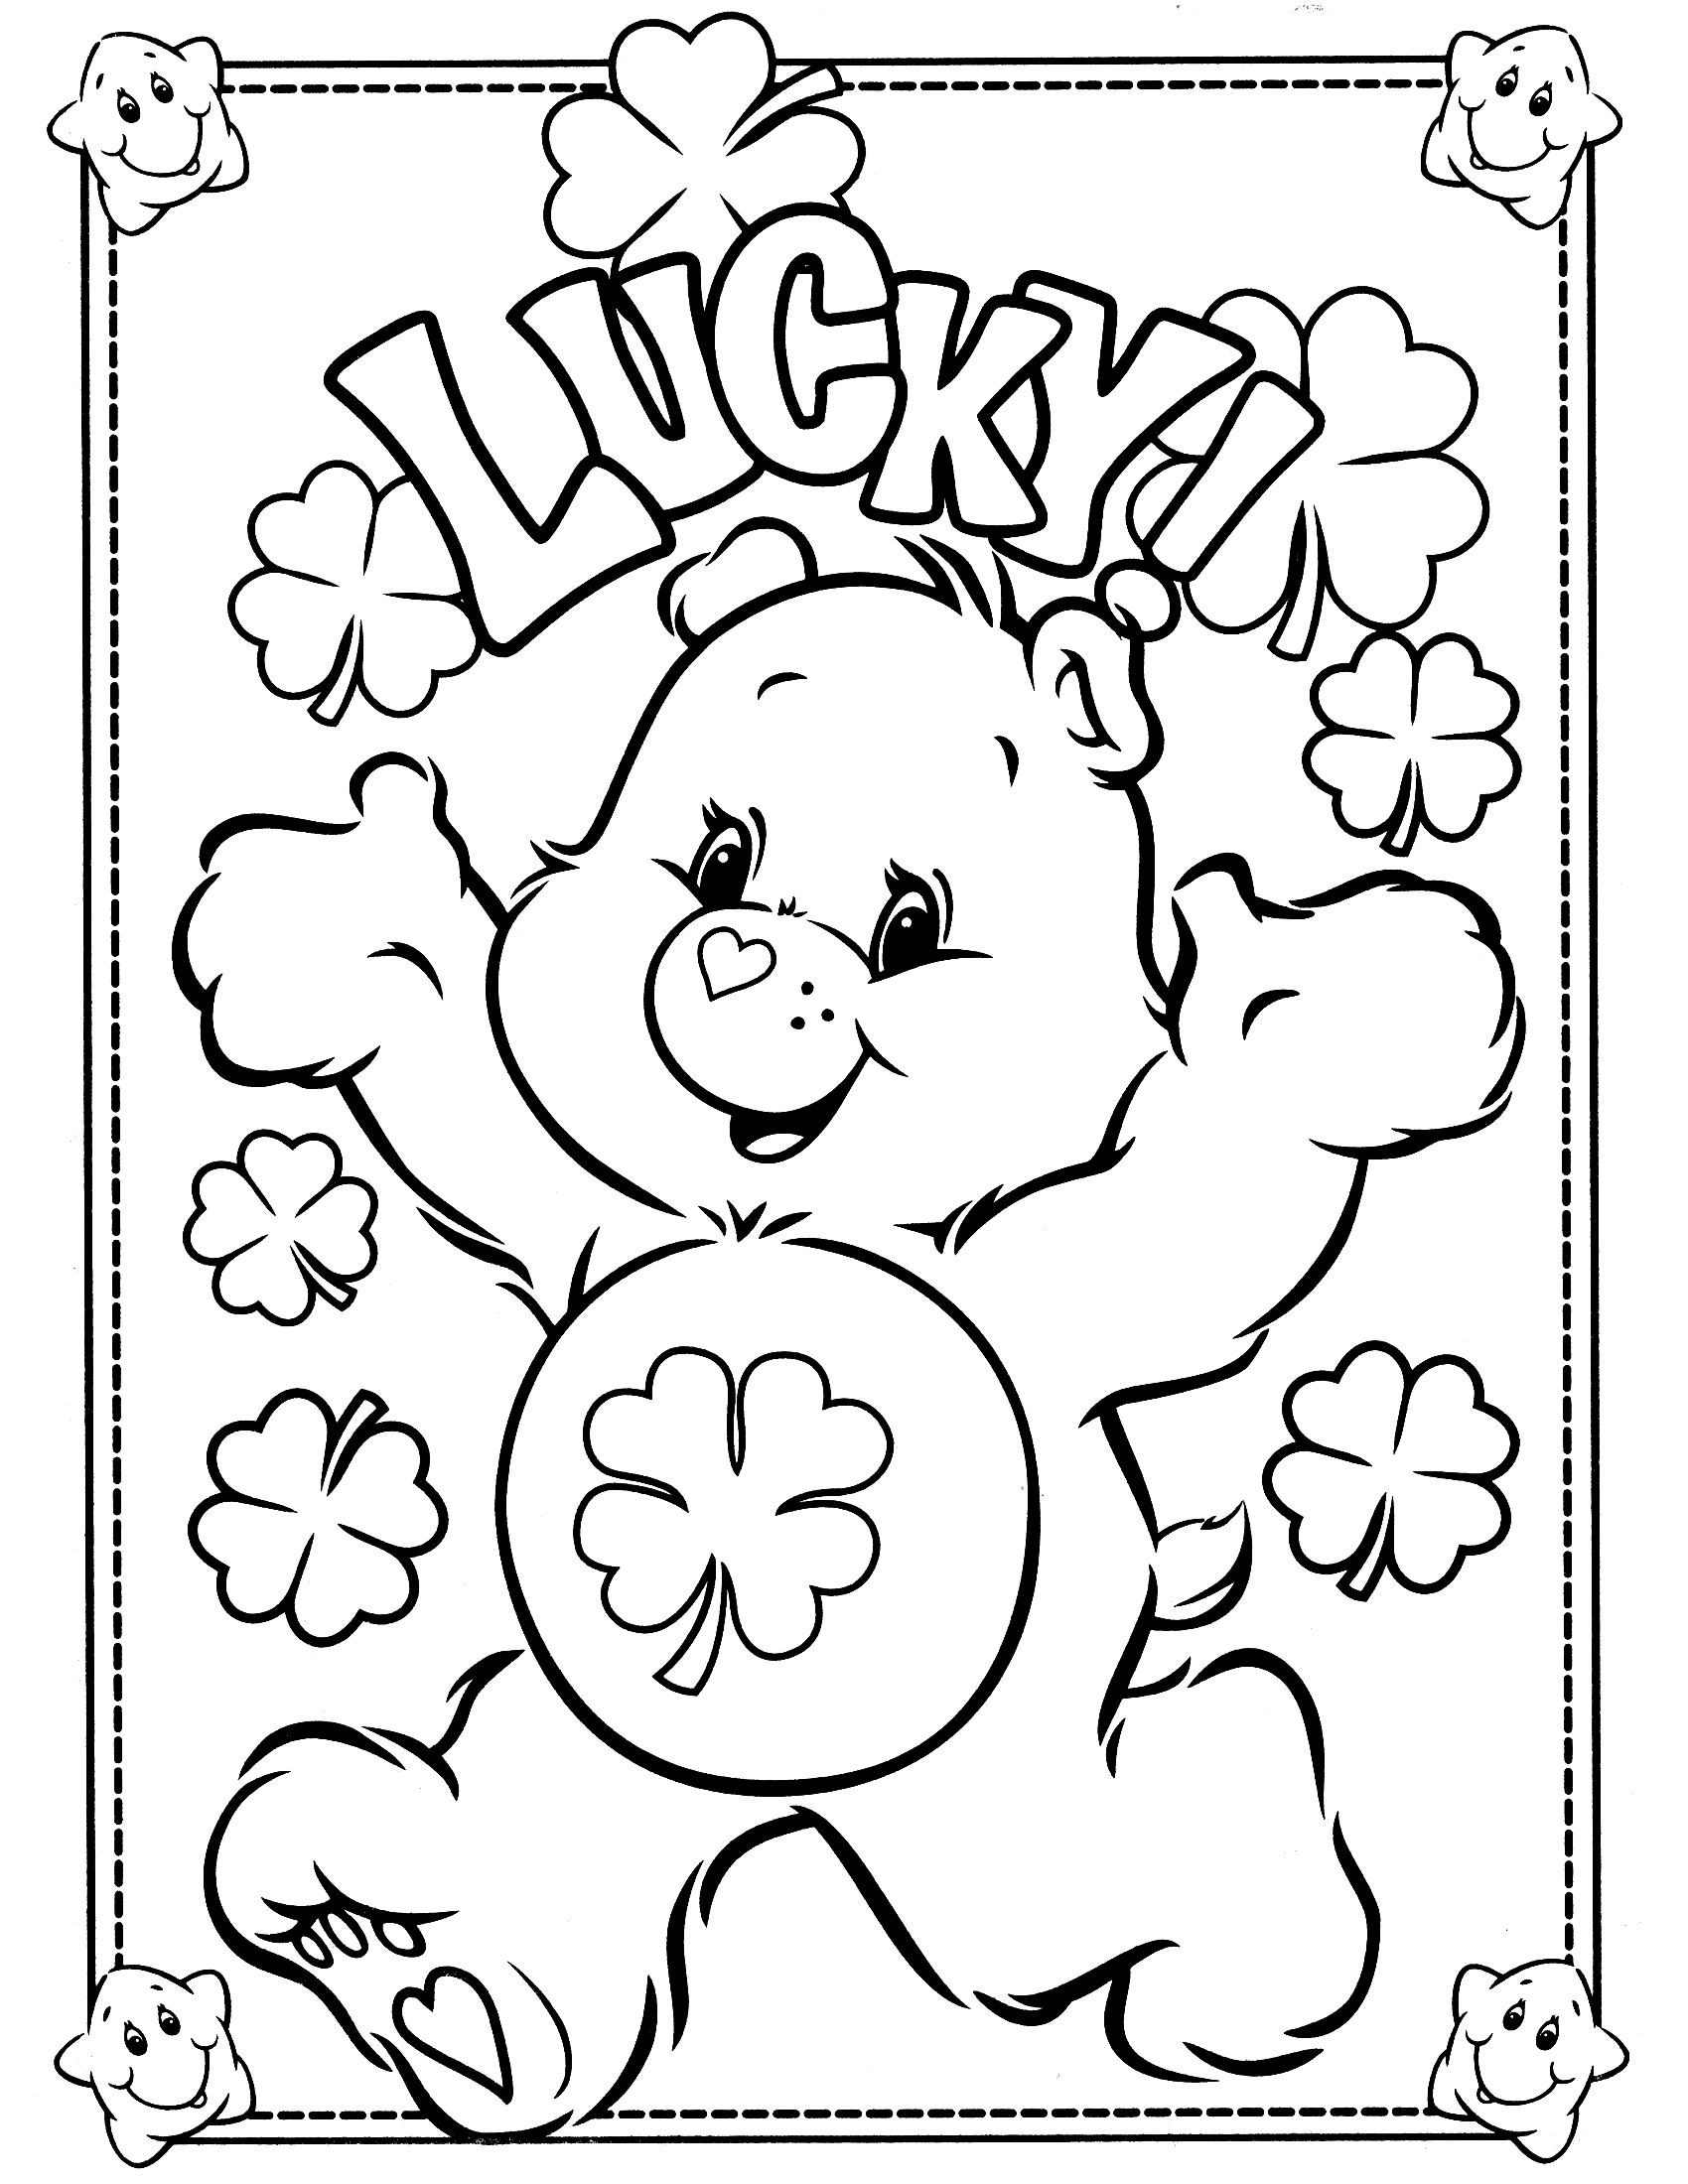 Bear Coloring Pages Pdf : Free printable care bear coloring pages for kids